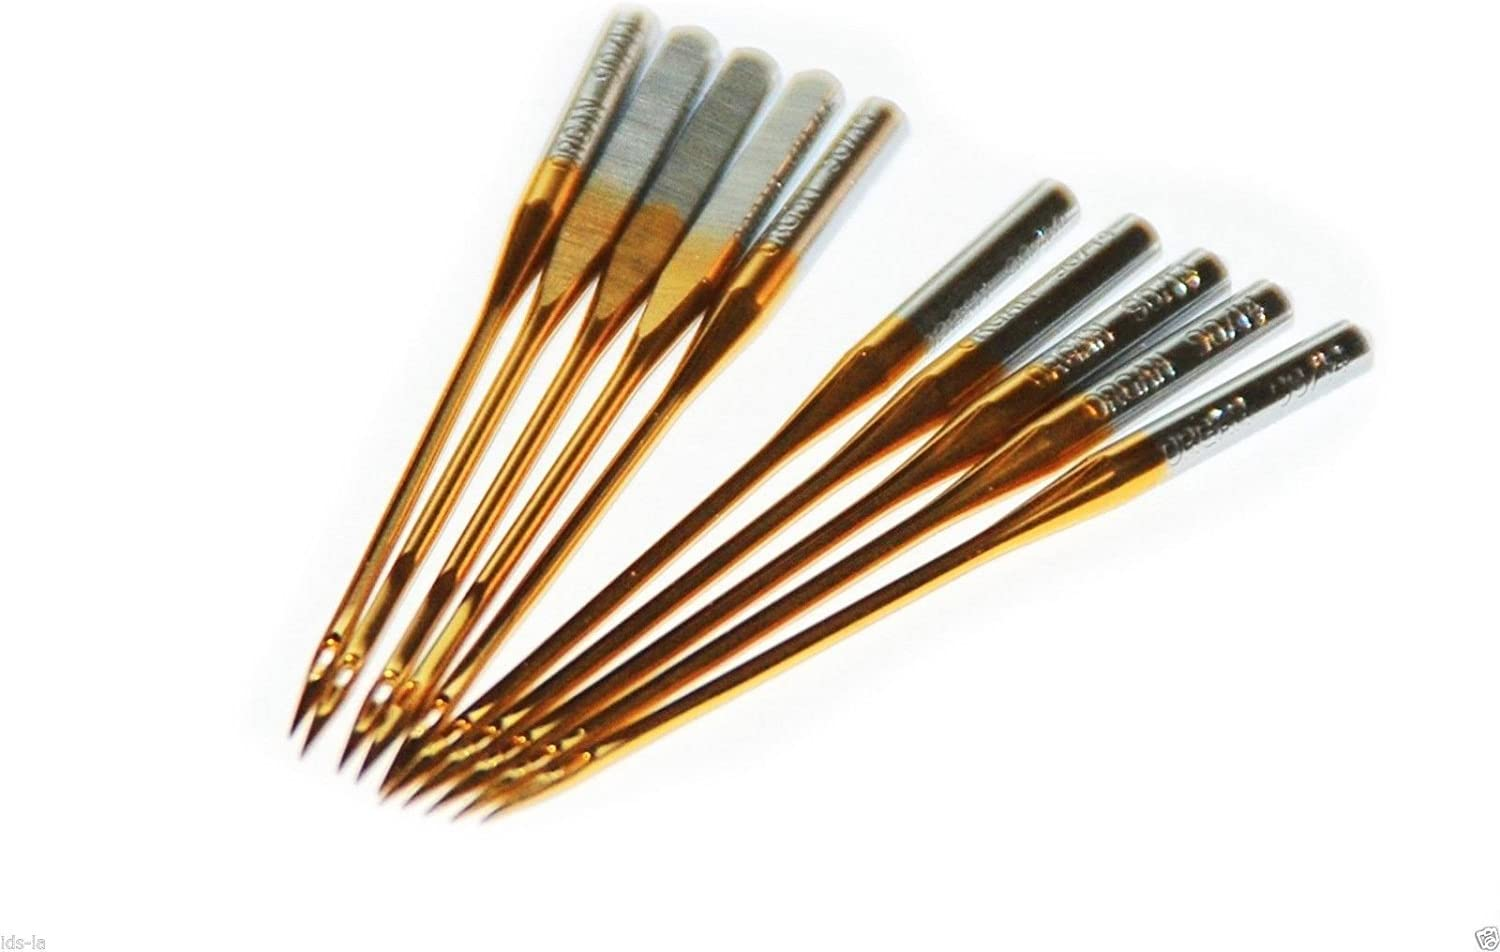 30 NEEDLES 15X1PD11 Sewing Machine Needles Size 11 Organ Titanium coated